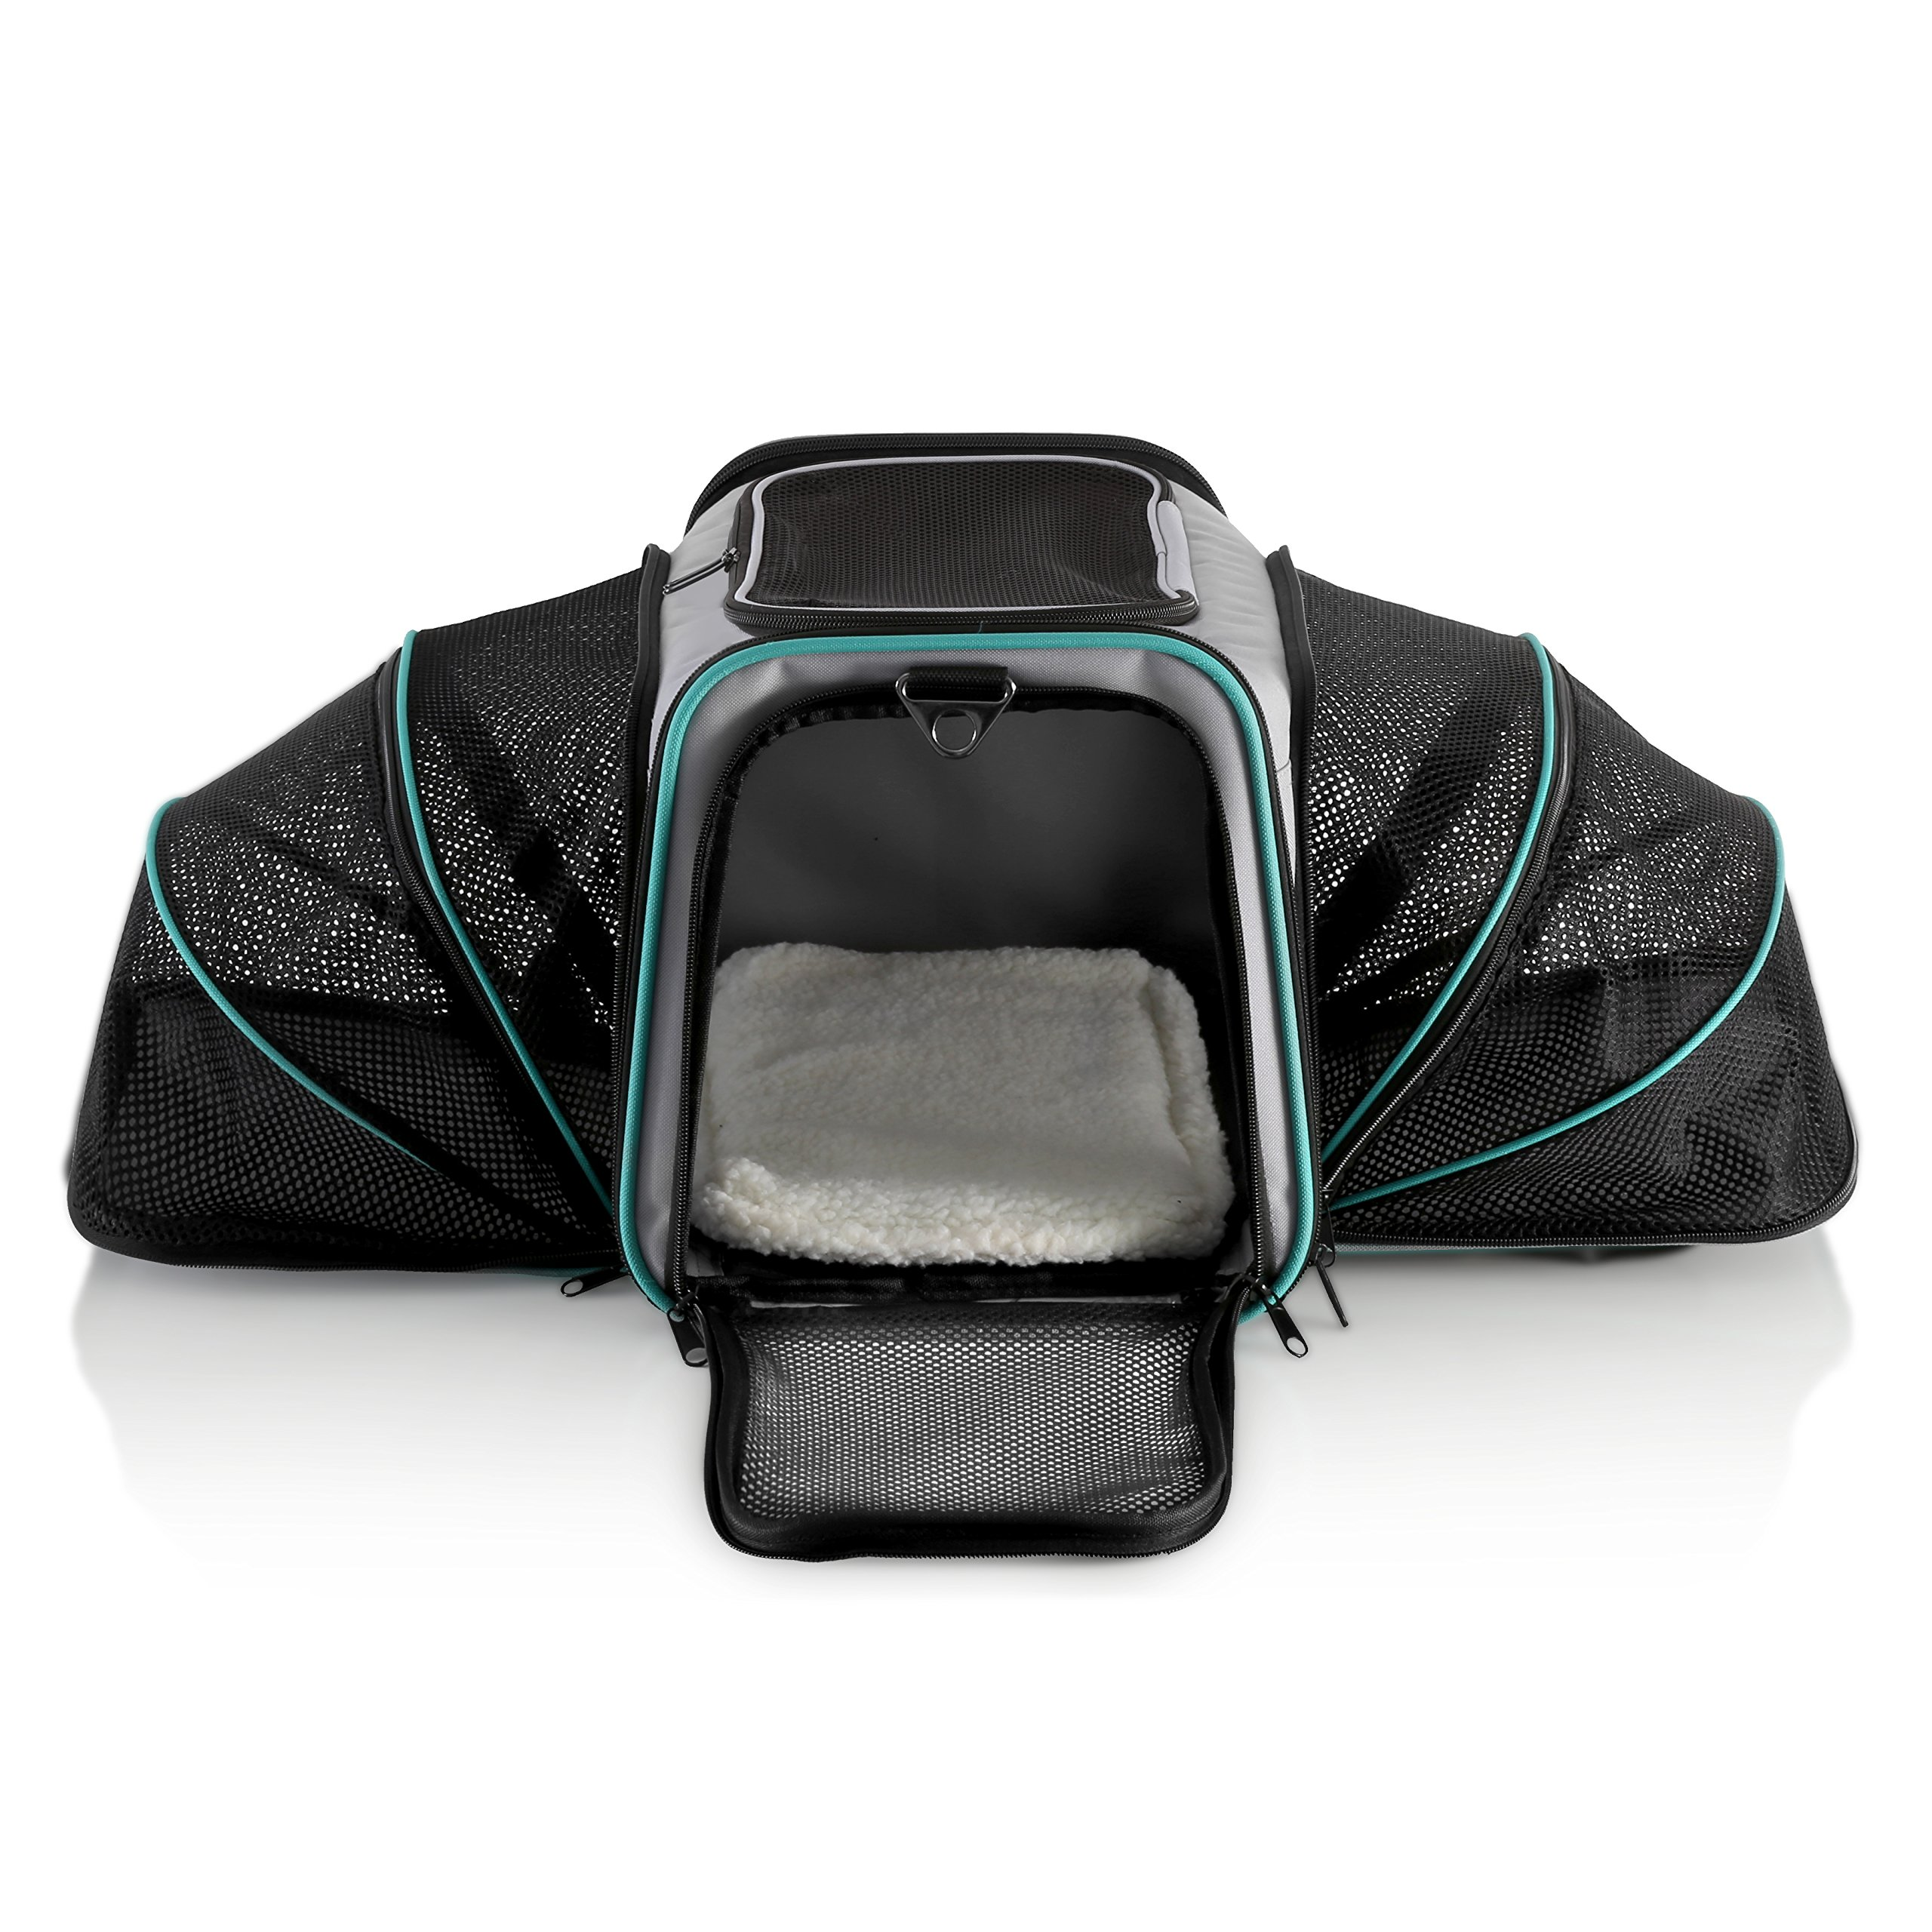 Dual Expandable Pet Carrier with Soft Sided Crate for Small Animals - Airline Approved Pet Carrier with Adjustable Shoulder Strap and Handle for Dogs Cats   Terminal Friendly Carry Bag for Pets-Grey